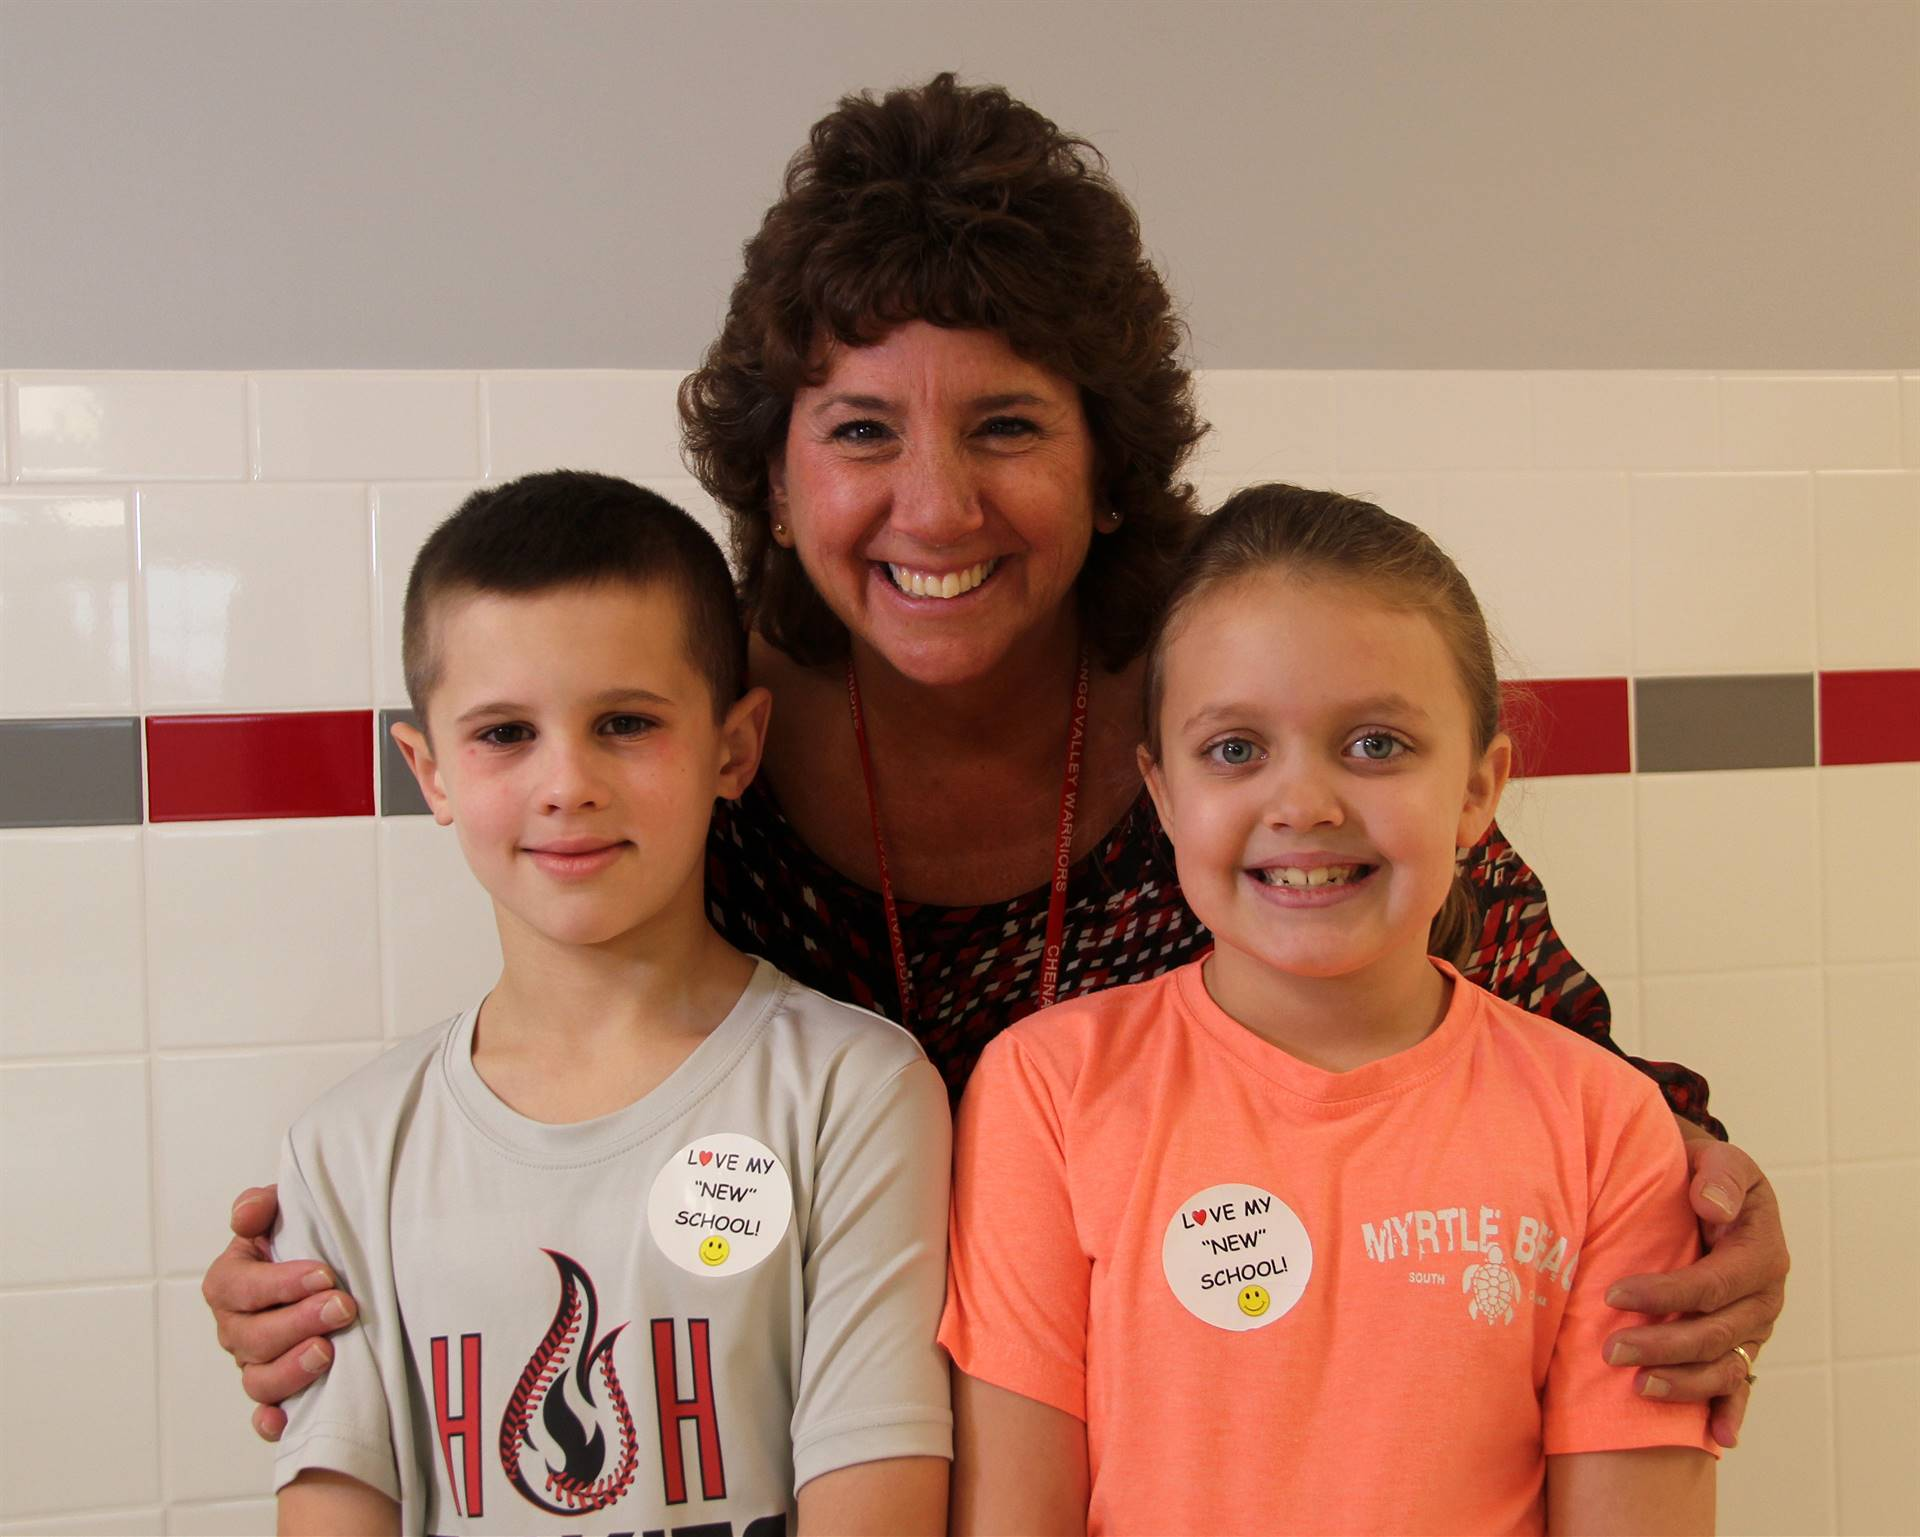 principal smiling with two students